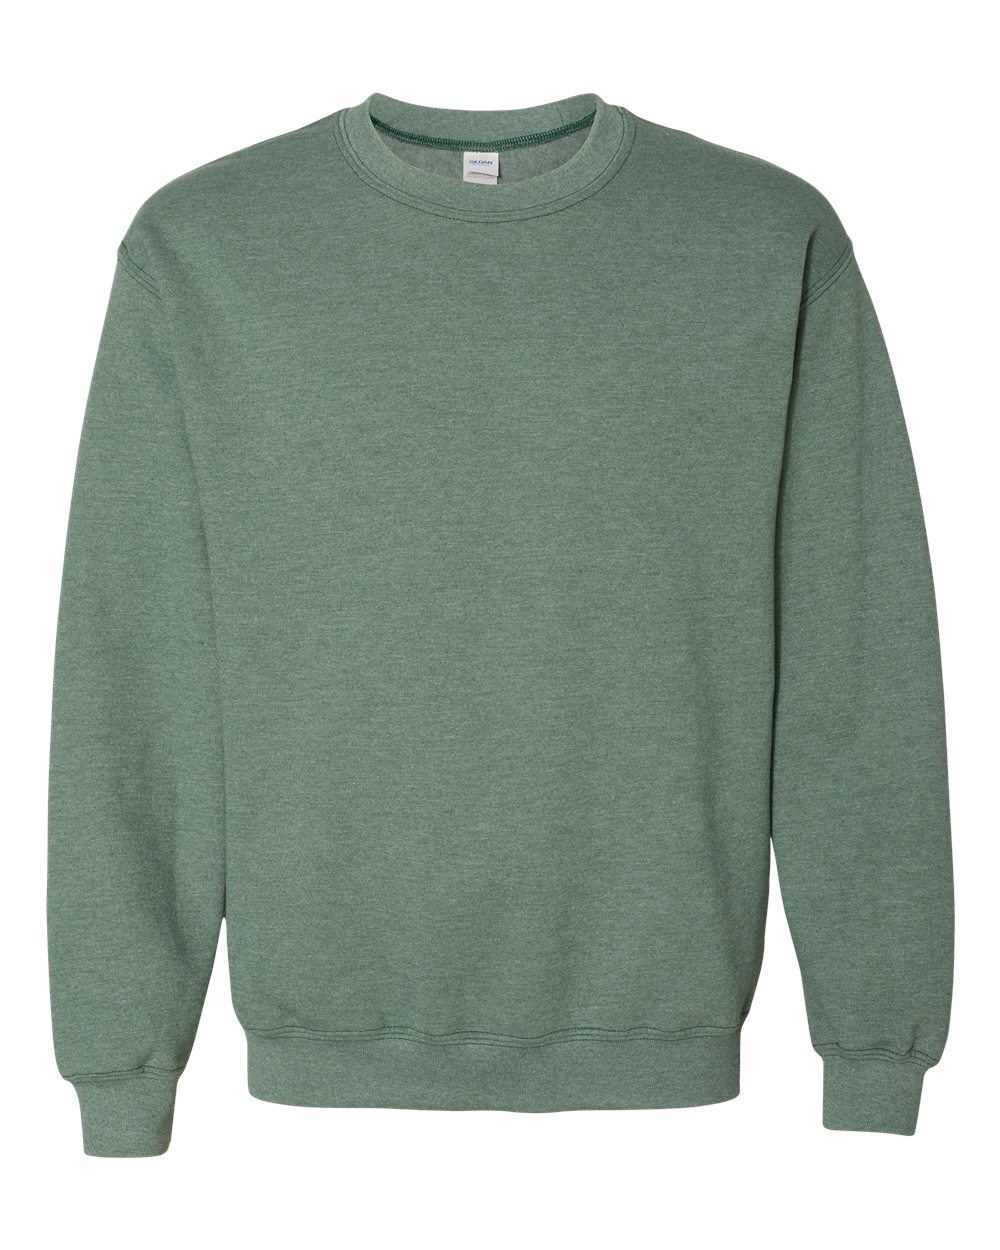 click to view Heather Sport Dark Green